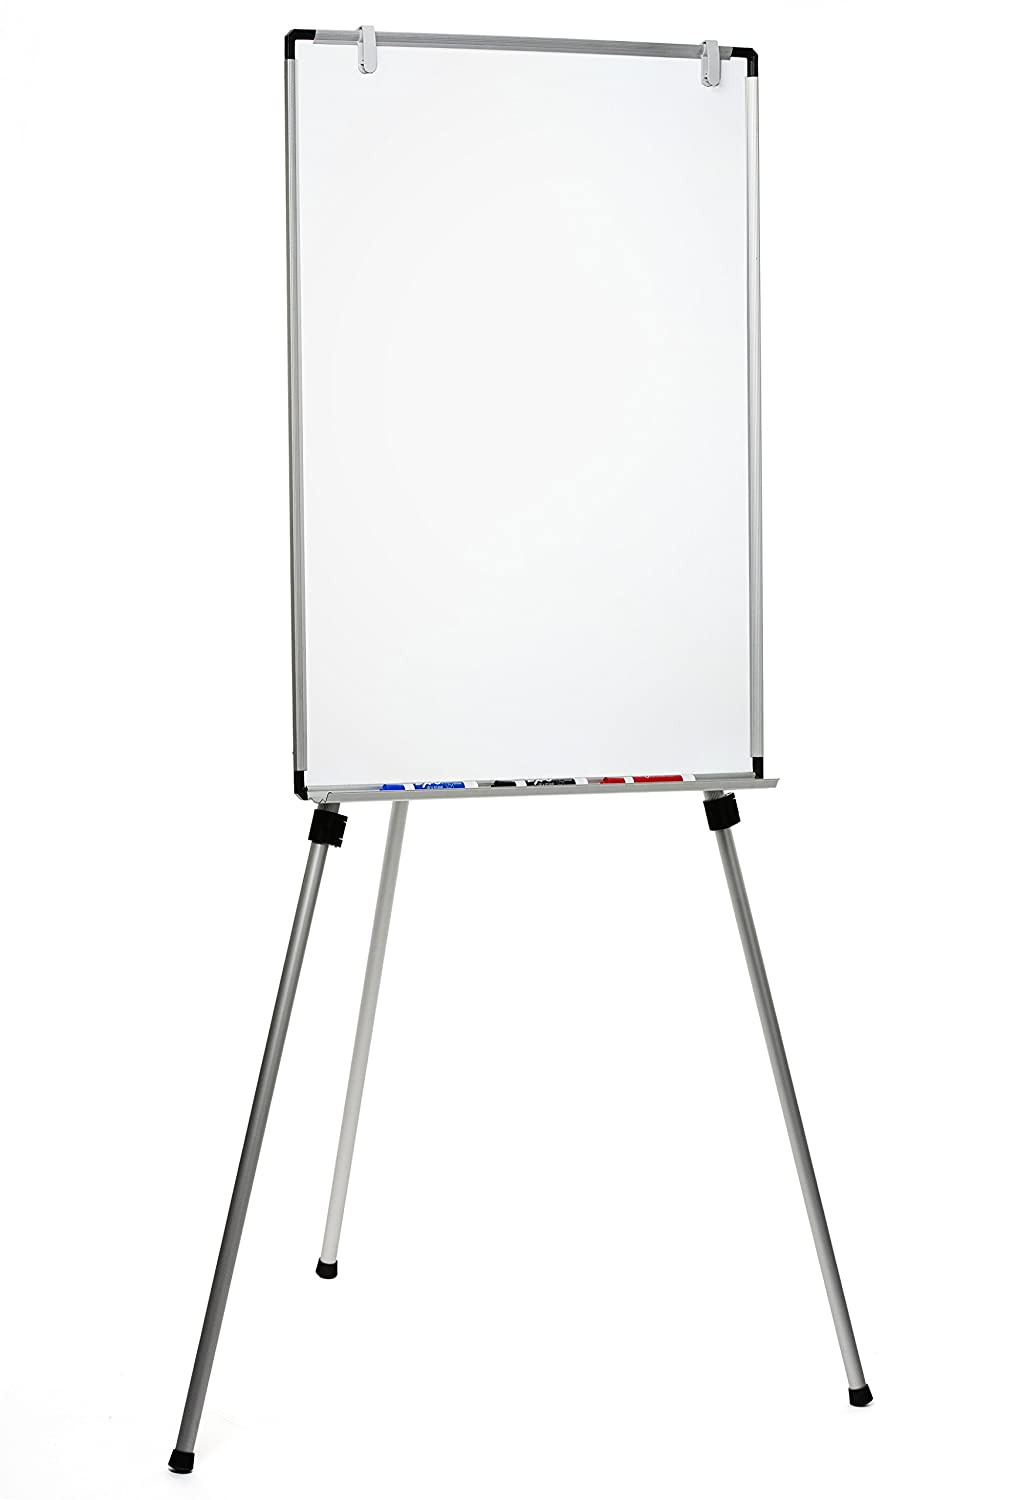 Magnetic Dry-Erase Board Lightweight Aluminum Flip Chart Presentation Easel (23 x 34) Audio-Visual Direct